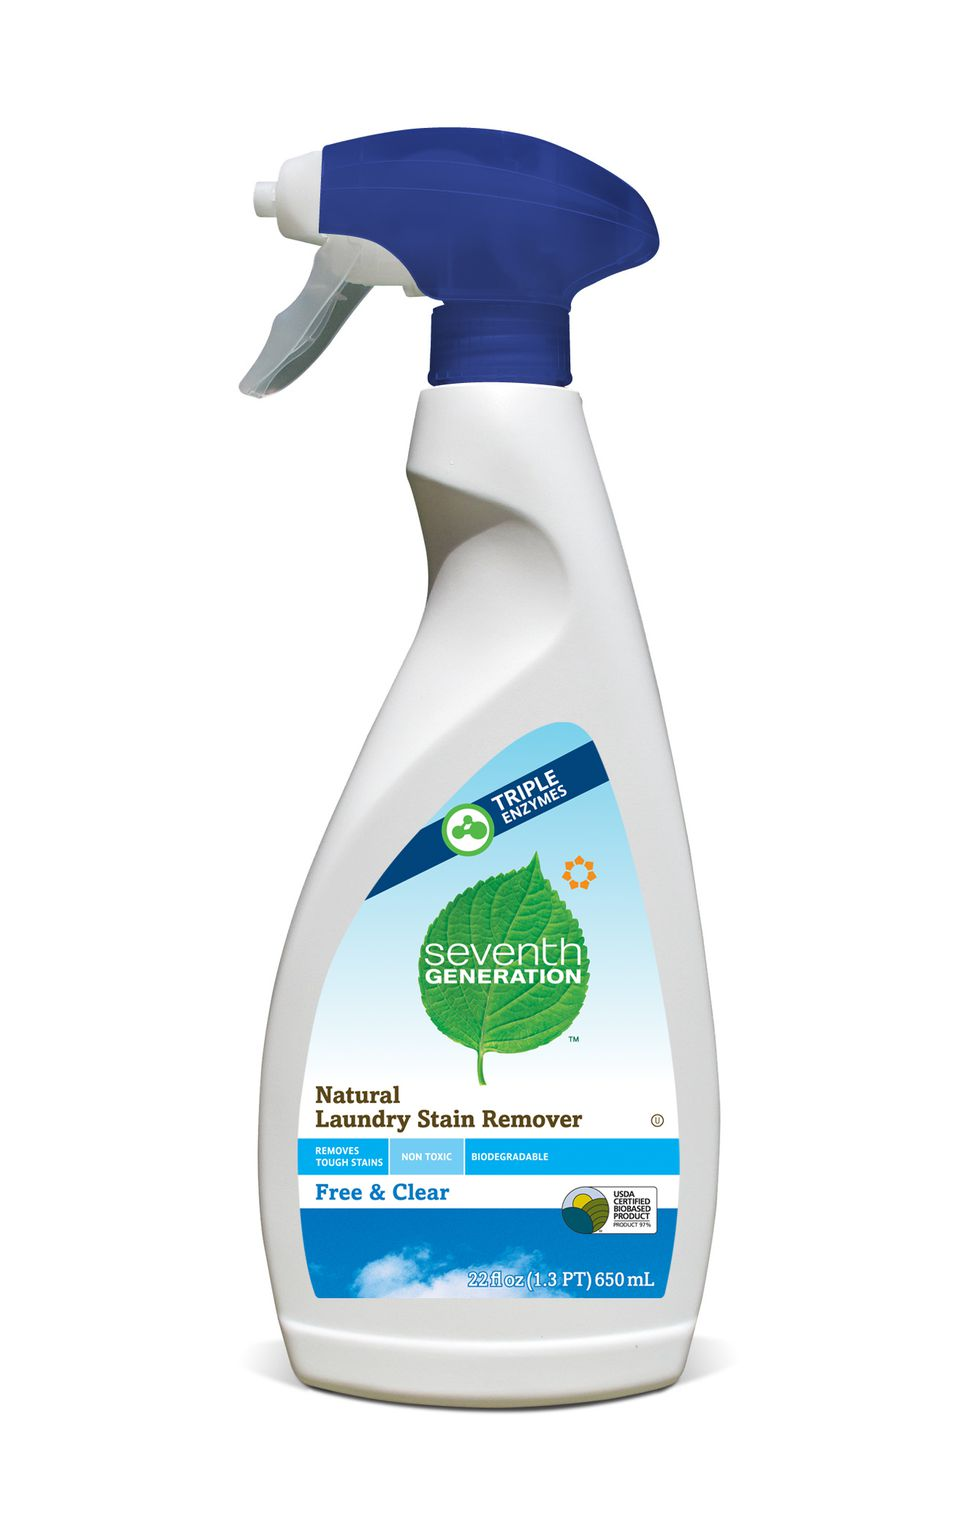 Seventh Generation Free & Clear Natural Laundry Stain Remover